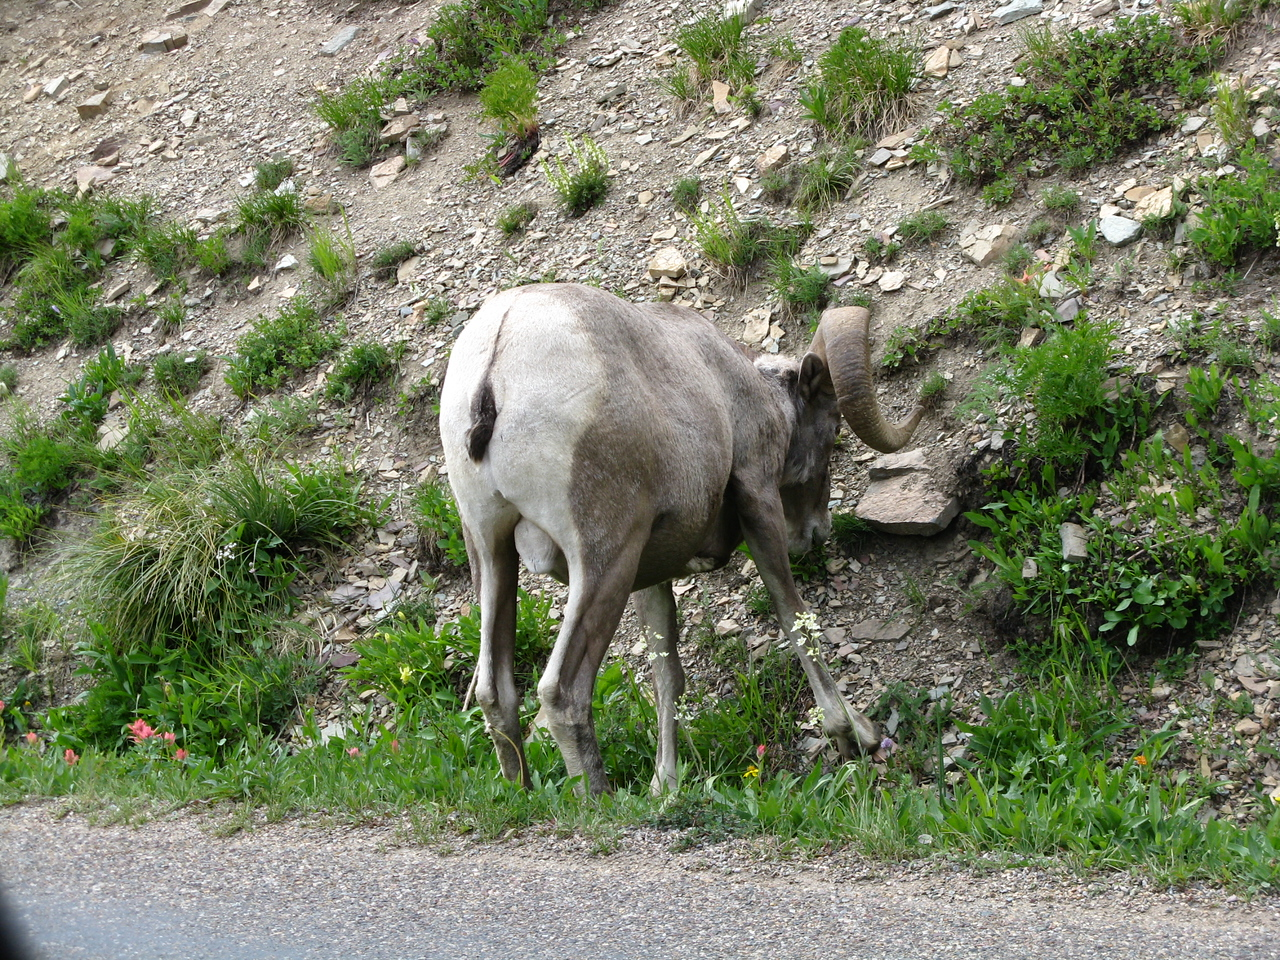 The ram is not cooperative and provides a very disappointing pose before we had to move down the road.